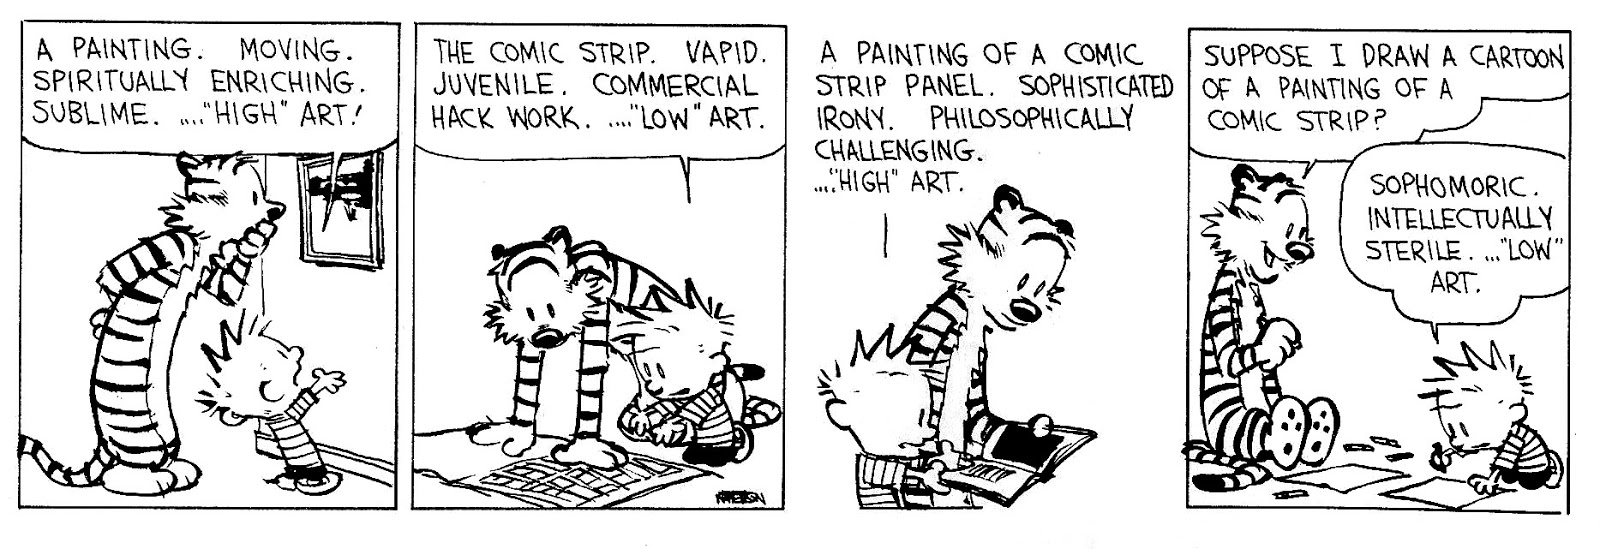 High Art and Low Art, Bill Watterson, Calvin & Hobbes - July 20, 1993